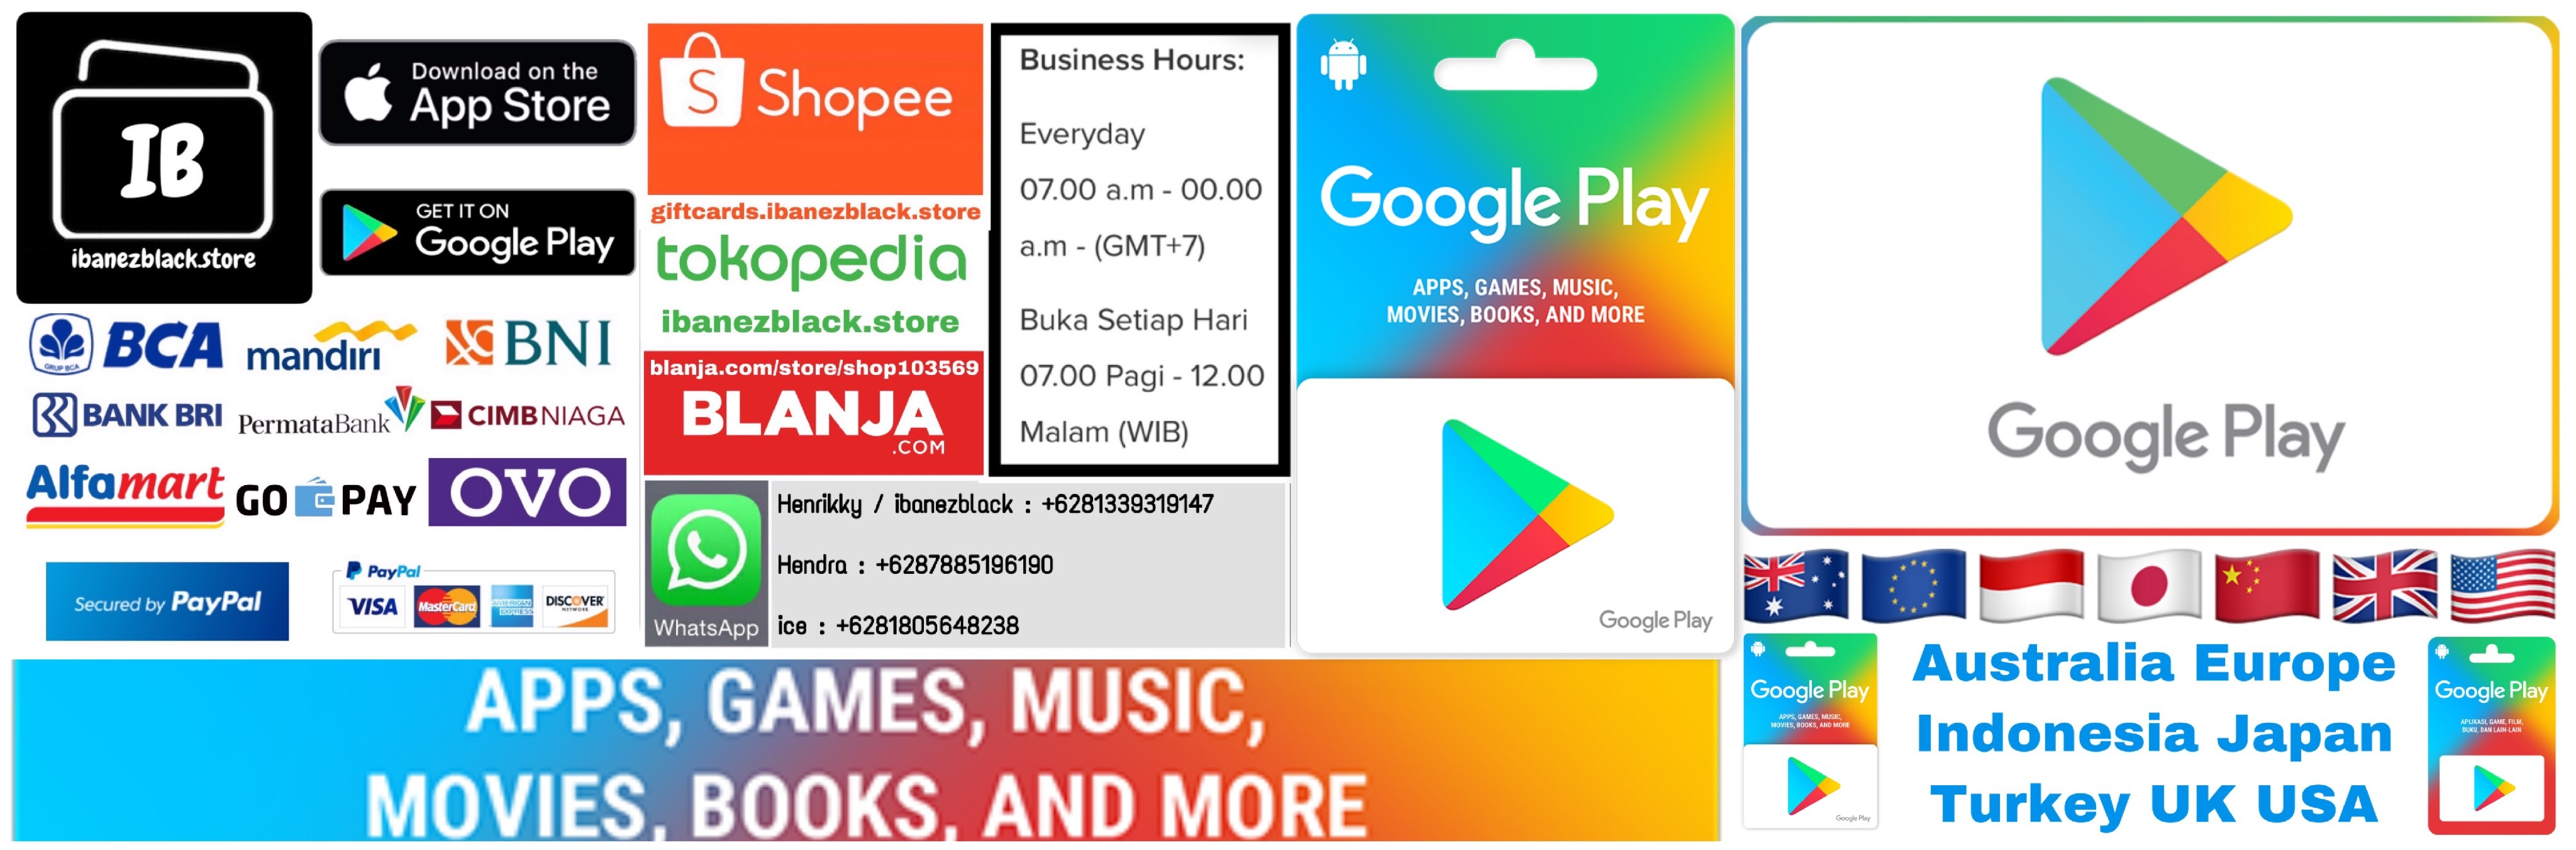 Google Play Gift Card Australia Europe Indonesia Japan Turkey UK USA